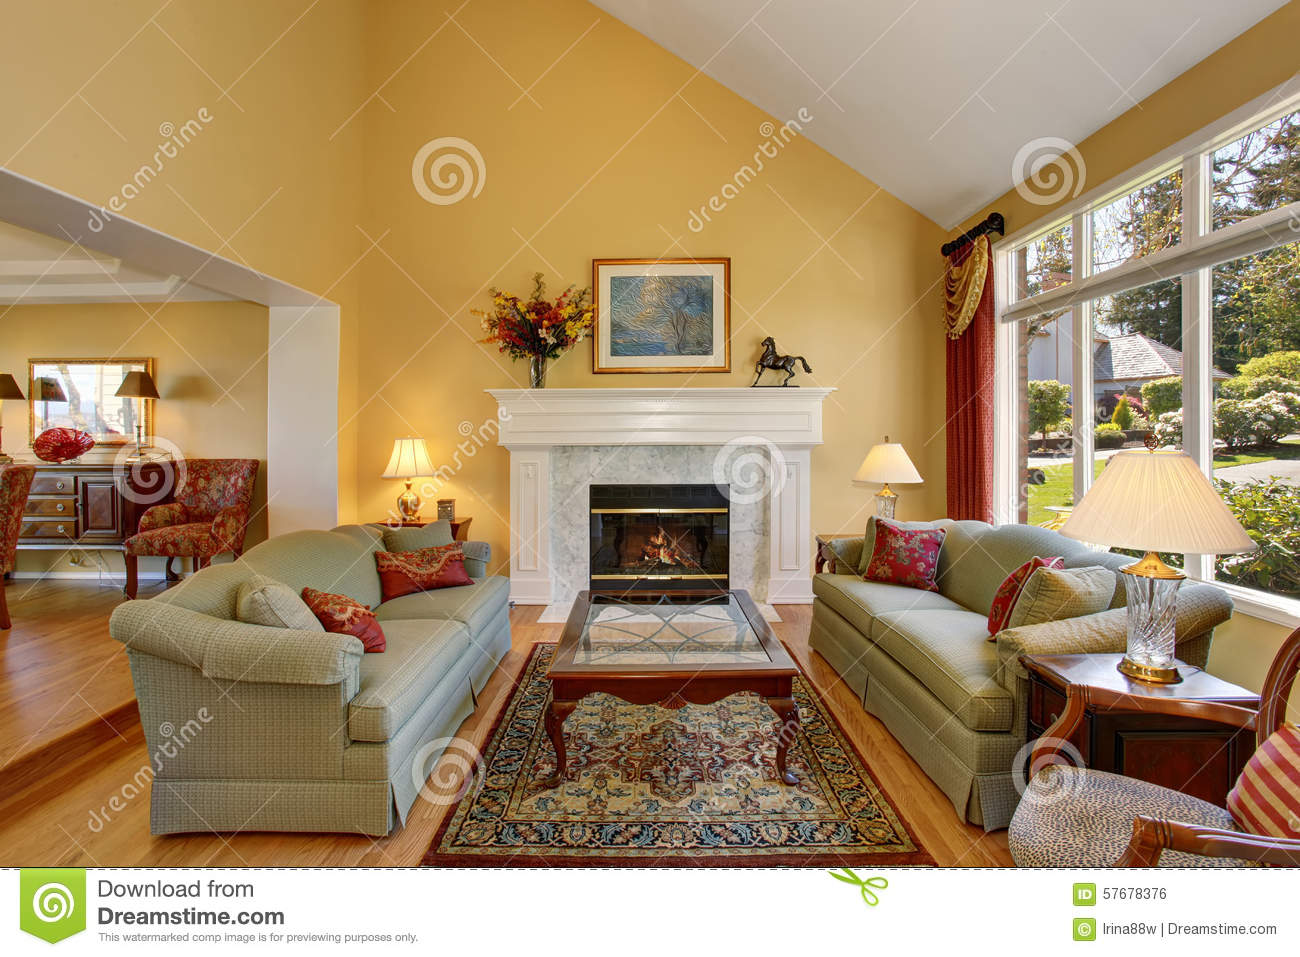 Brilliant Living Room With Green Sofas, And Yellow Walls. Royalty Free  Stock Image Part 74